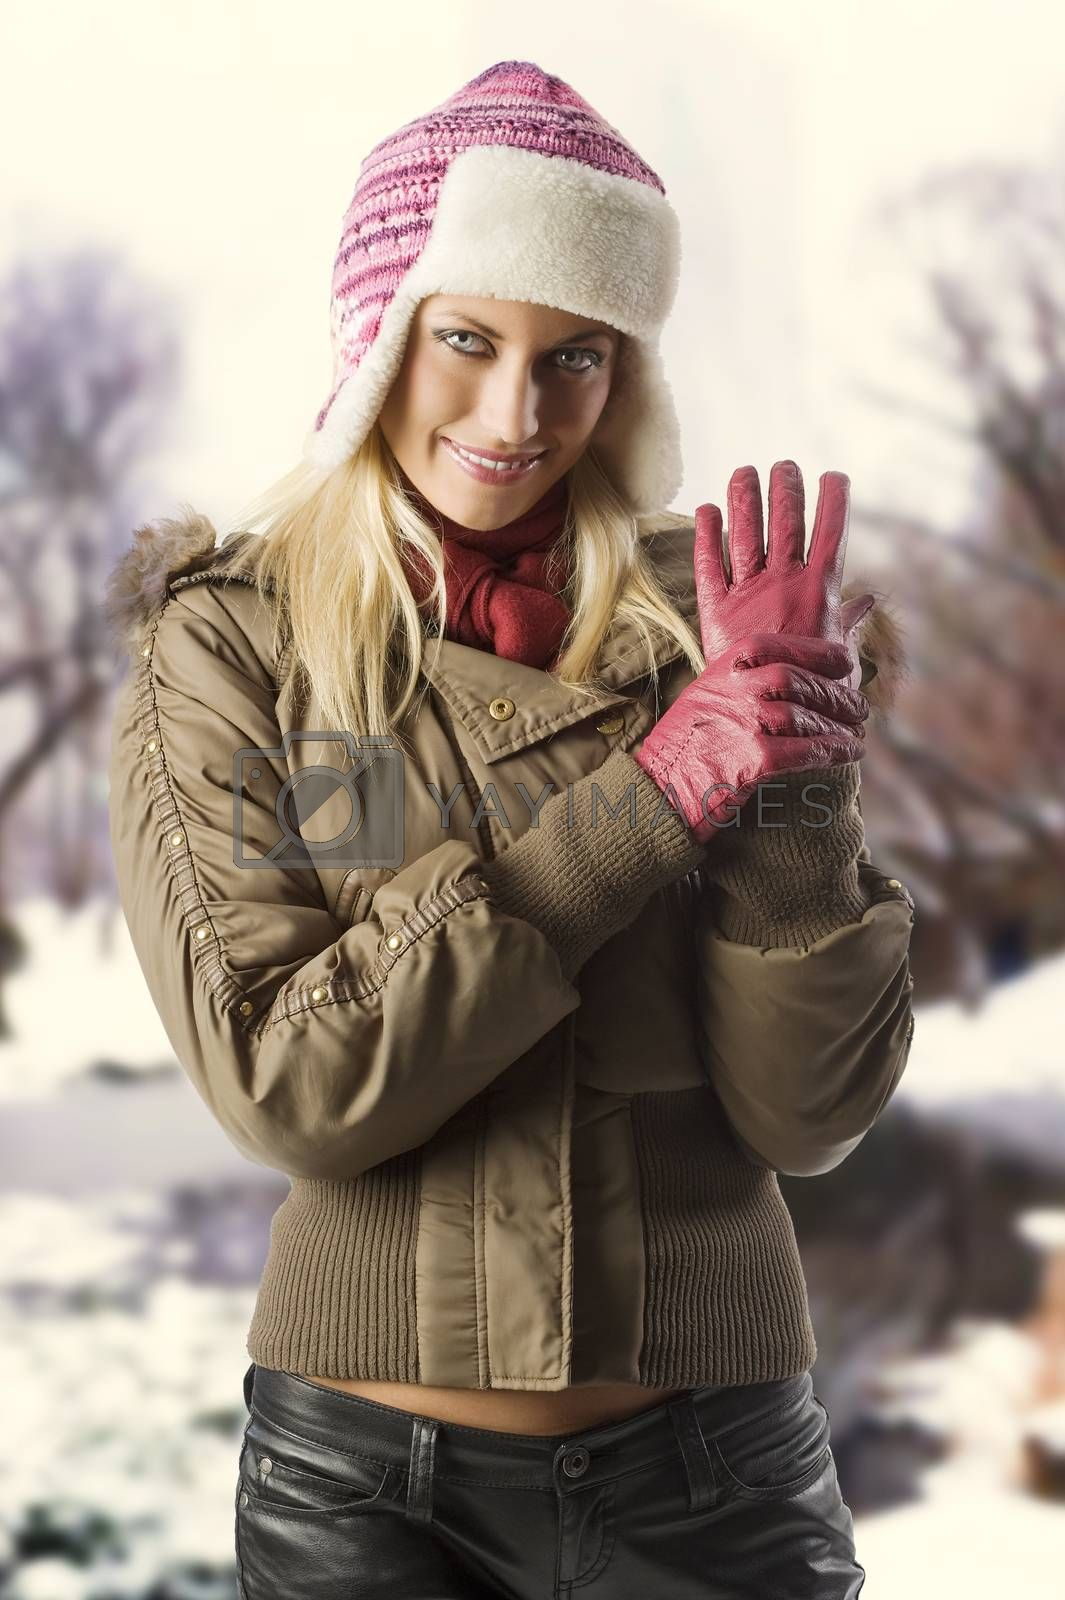 Royalty free image of girl ready for winter by fotoCD